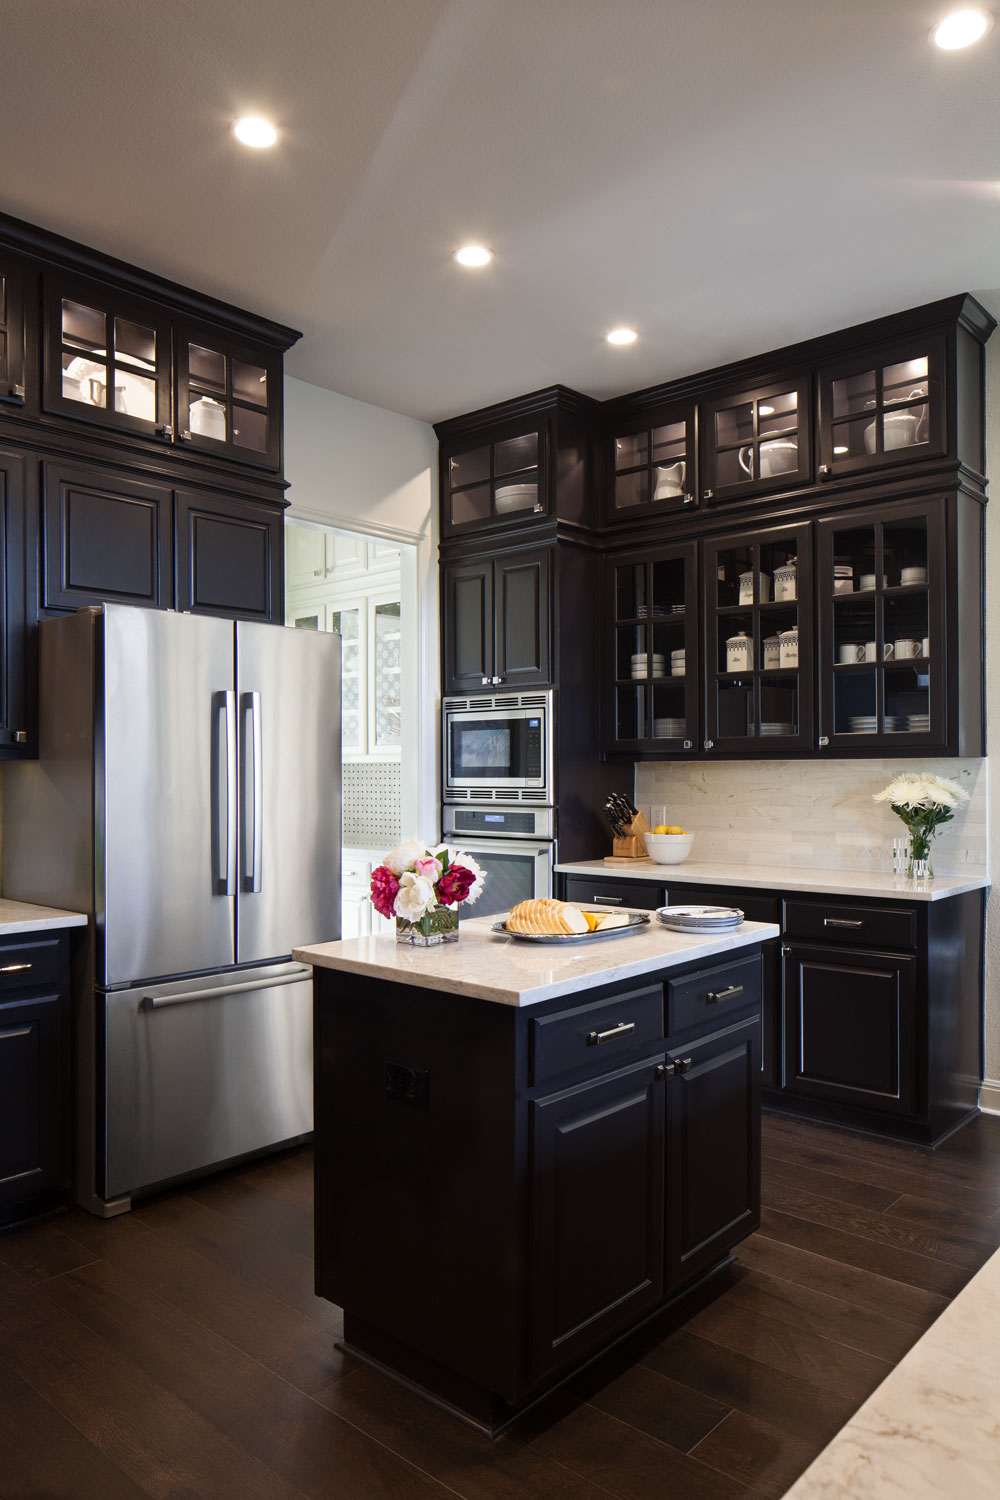 Kitchen Ceiling Height Tiles